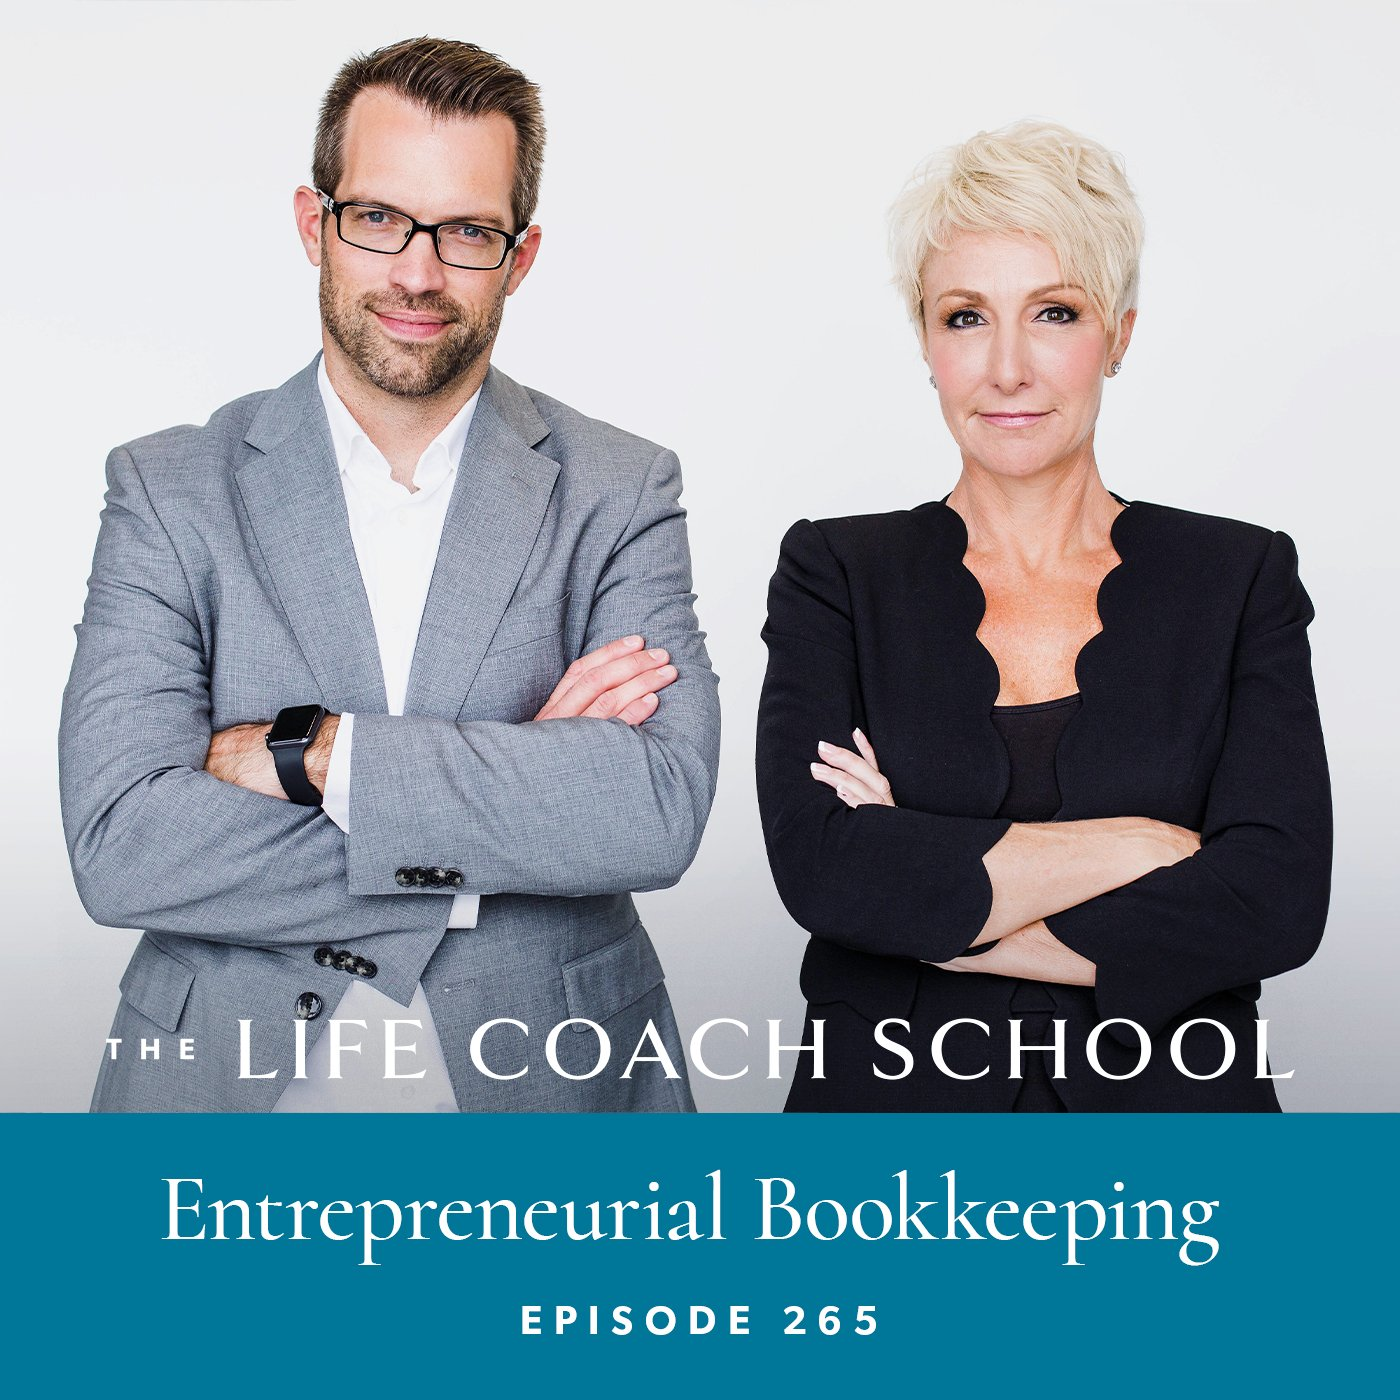 The Life Coach School Podcast with Brooke Castillo | Episode 265 | Entrepreneurial Bookkeeping